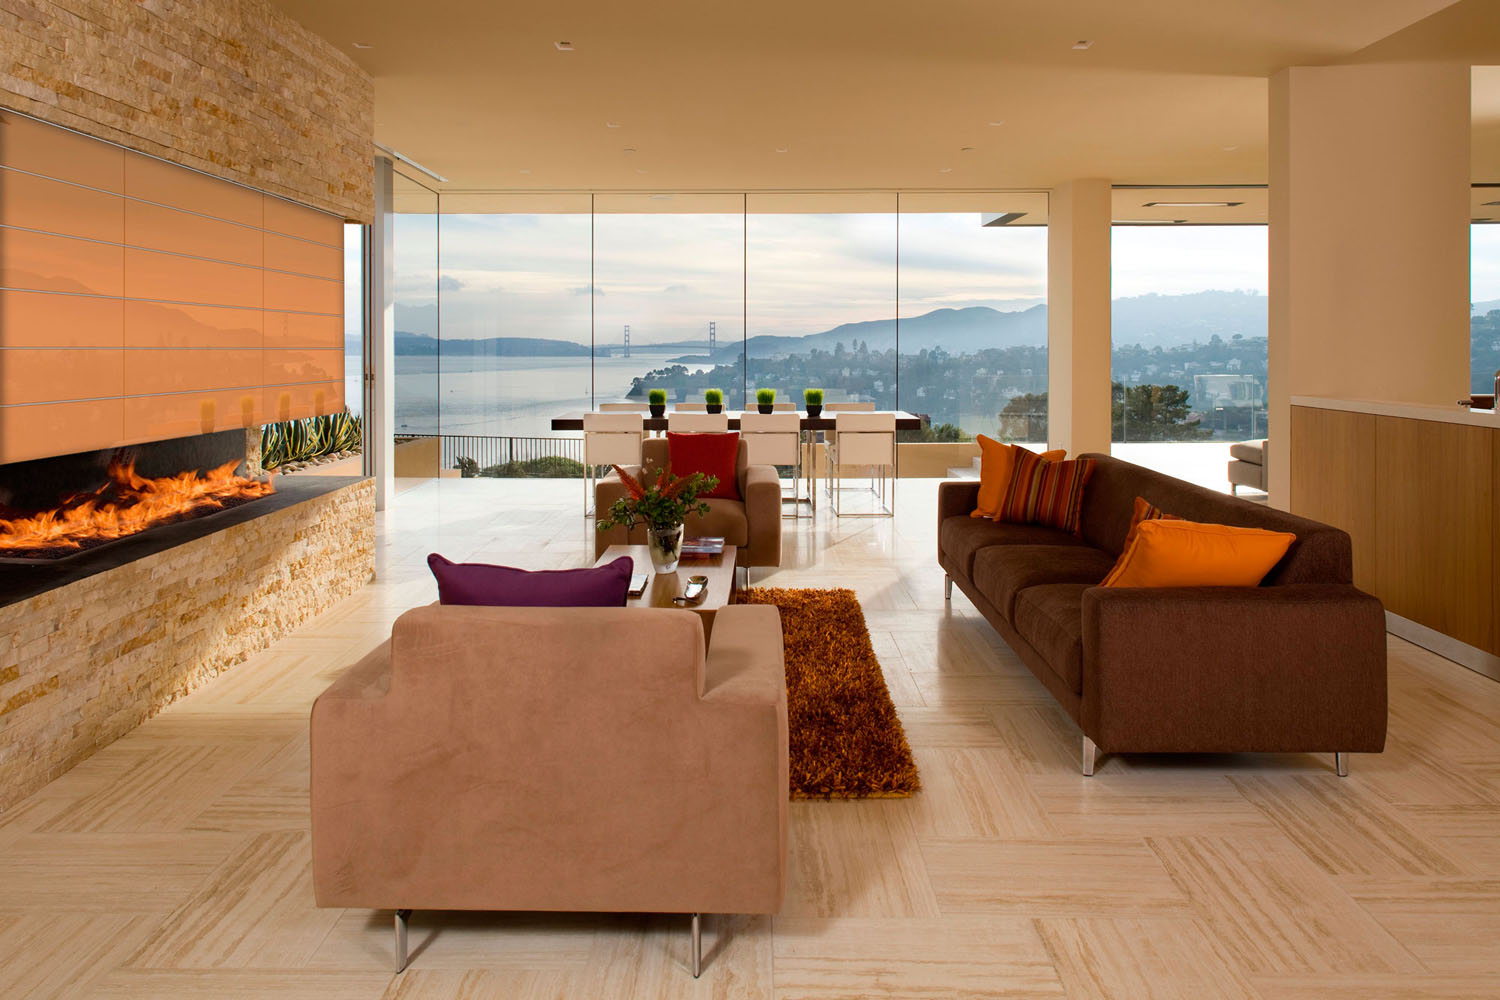 Luxury Ocean View Home San Francisco Bay and Golden Gate Bridge